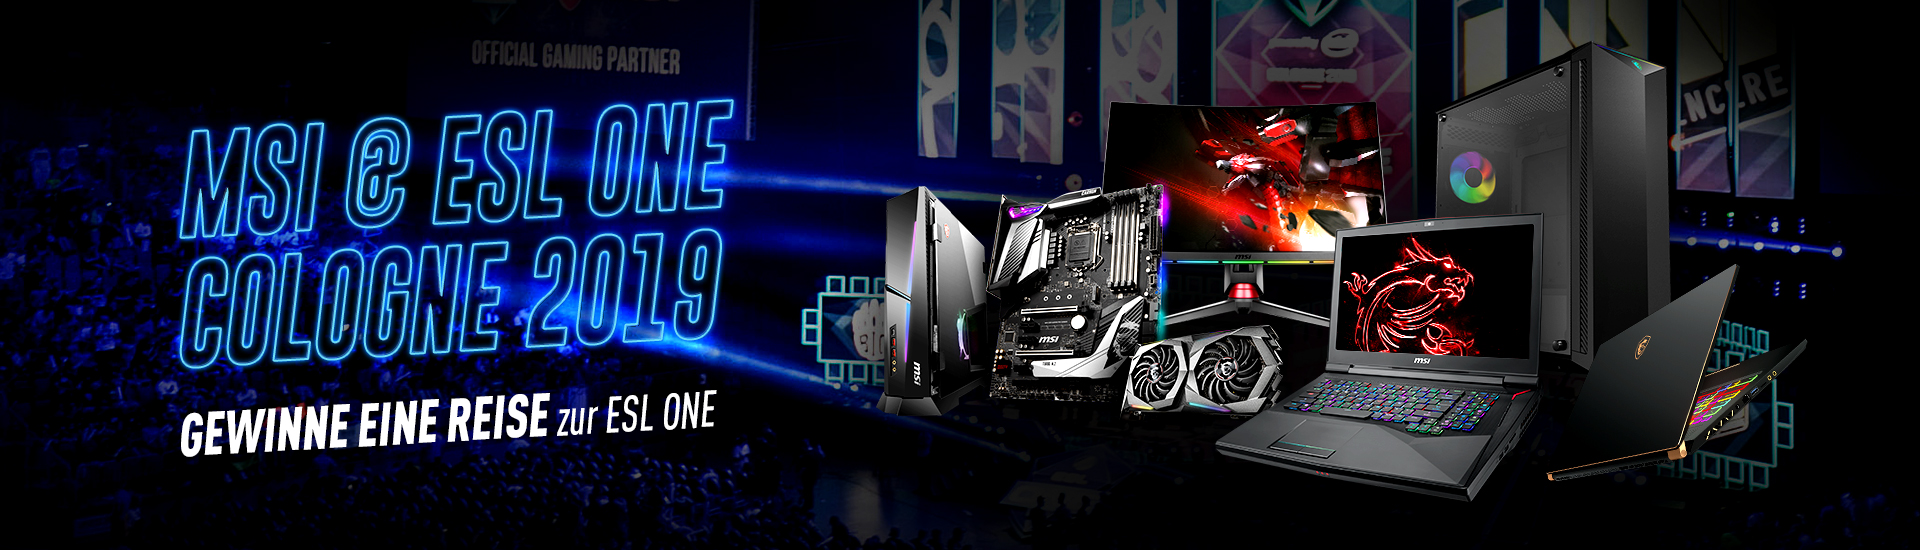 MSI X ESL ONE COLOGNE 2019